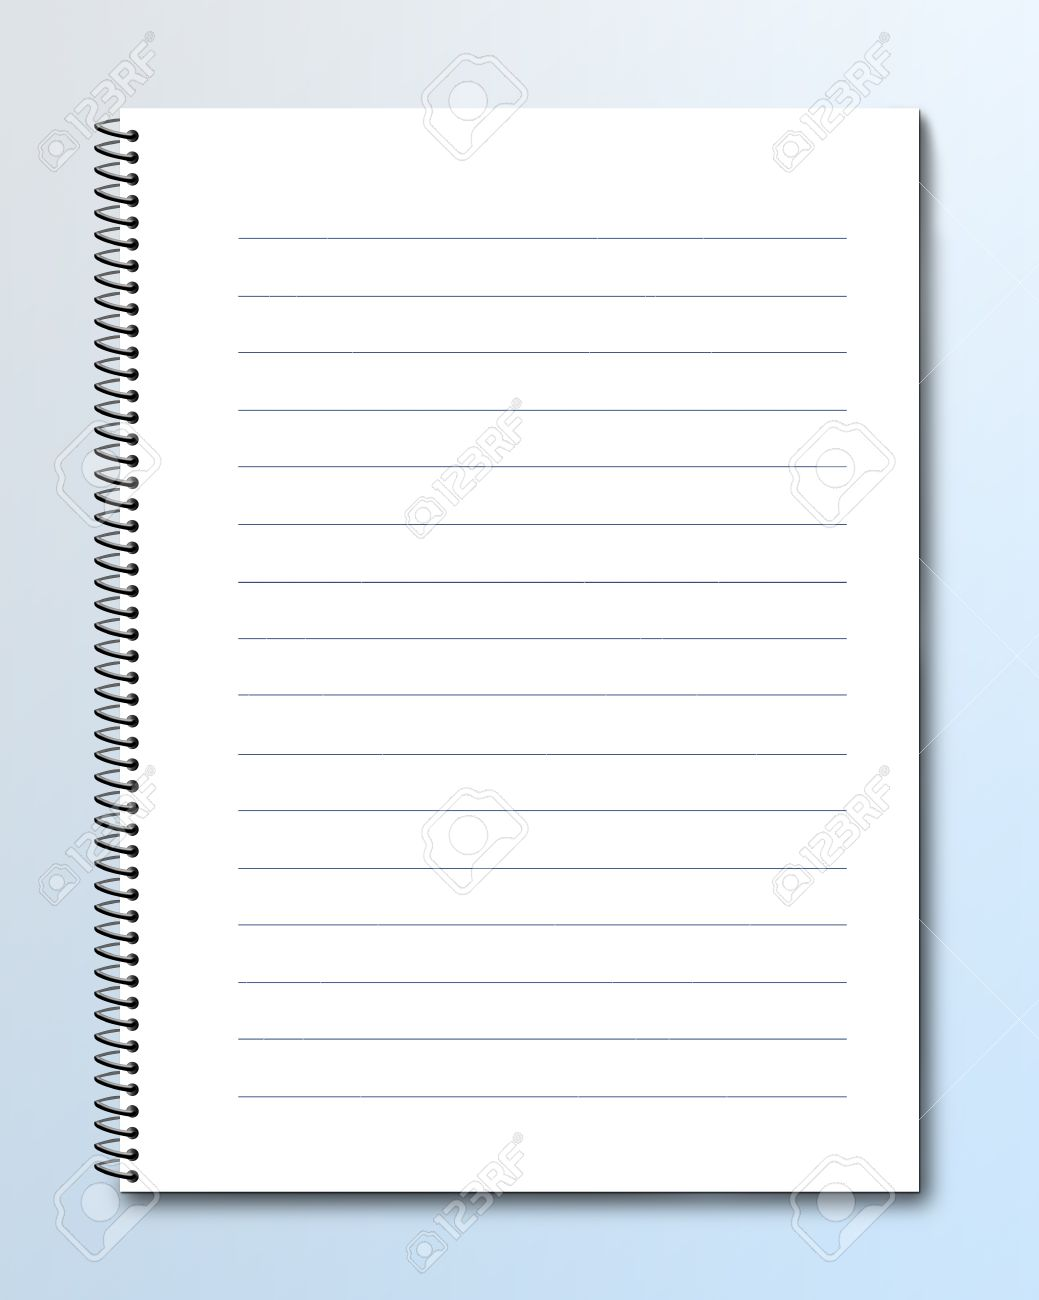 Blank Notebook With Lined Pages Photo Picture And Royalty – Lined Pages for Writing